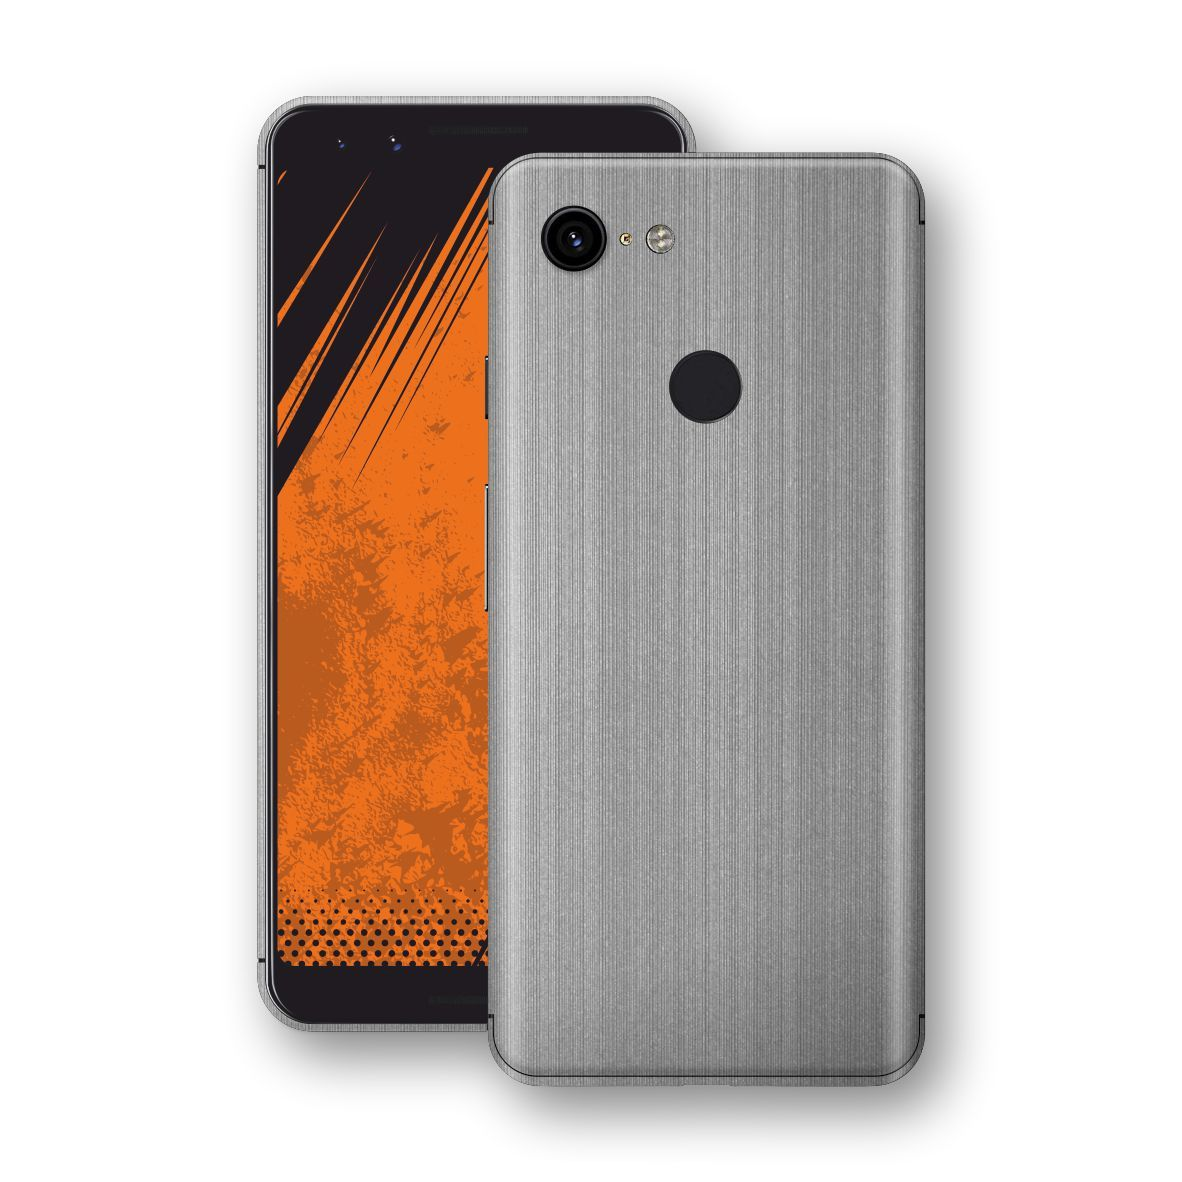 Google Pixel 3 Premium Brushed STEEL Metallic Metal Skin, Decal, Wrap, Protector, Cover by EasySkinz | EasySkinz.com